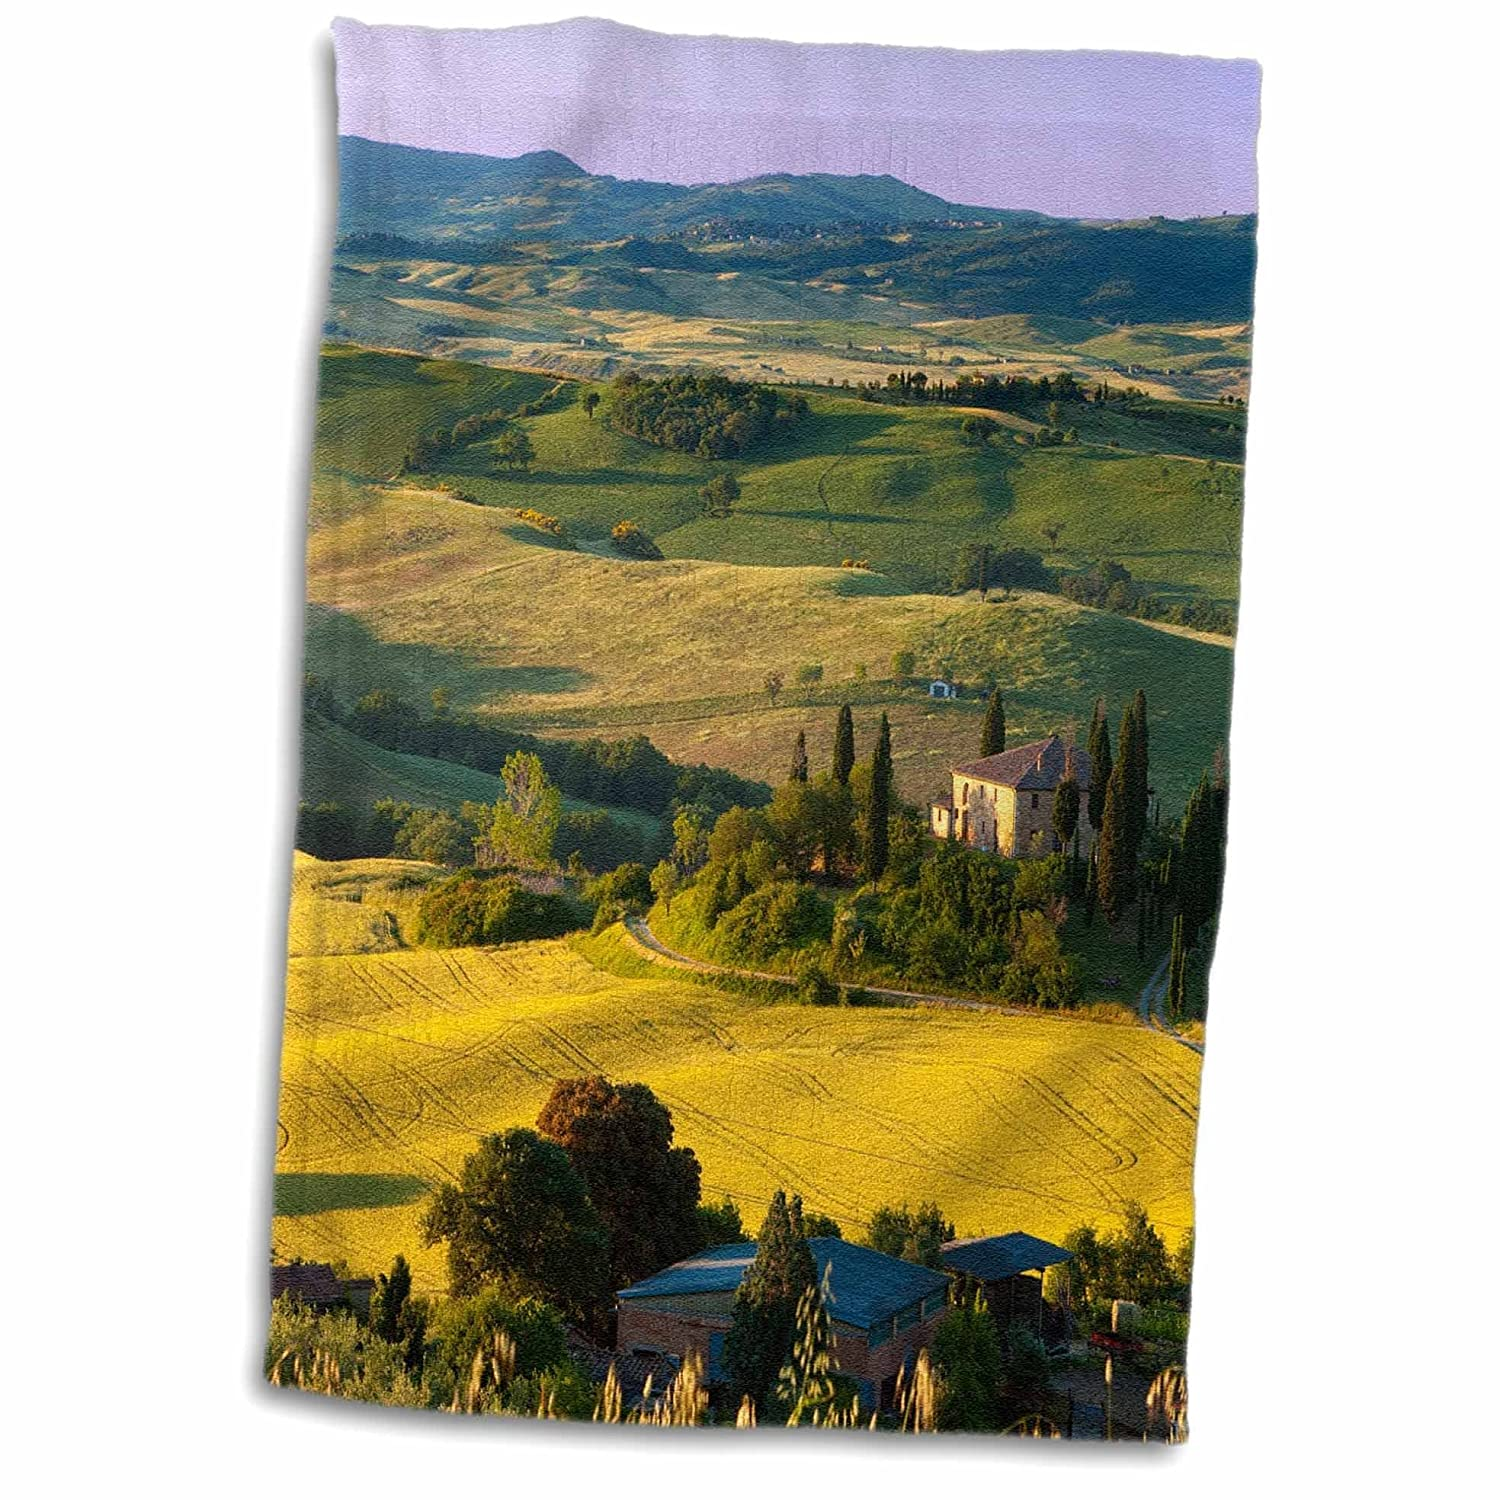 3D Rose Belvedere and Tuscan Countryside-Tuscany-Italy-Eu16 Bjn0253-Brian Jannsen Towel 15 x 22 3dRose twl/_137692/_1